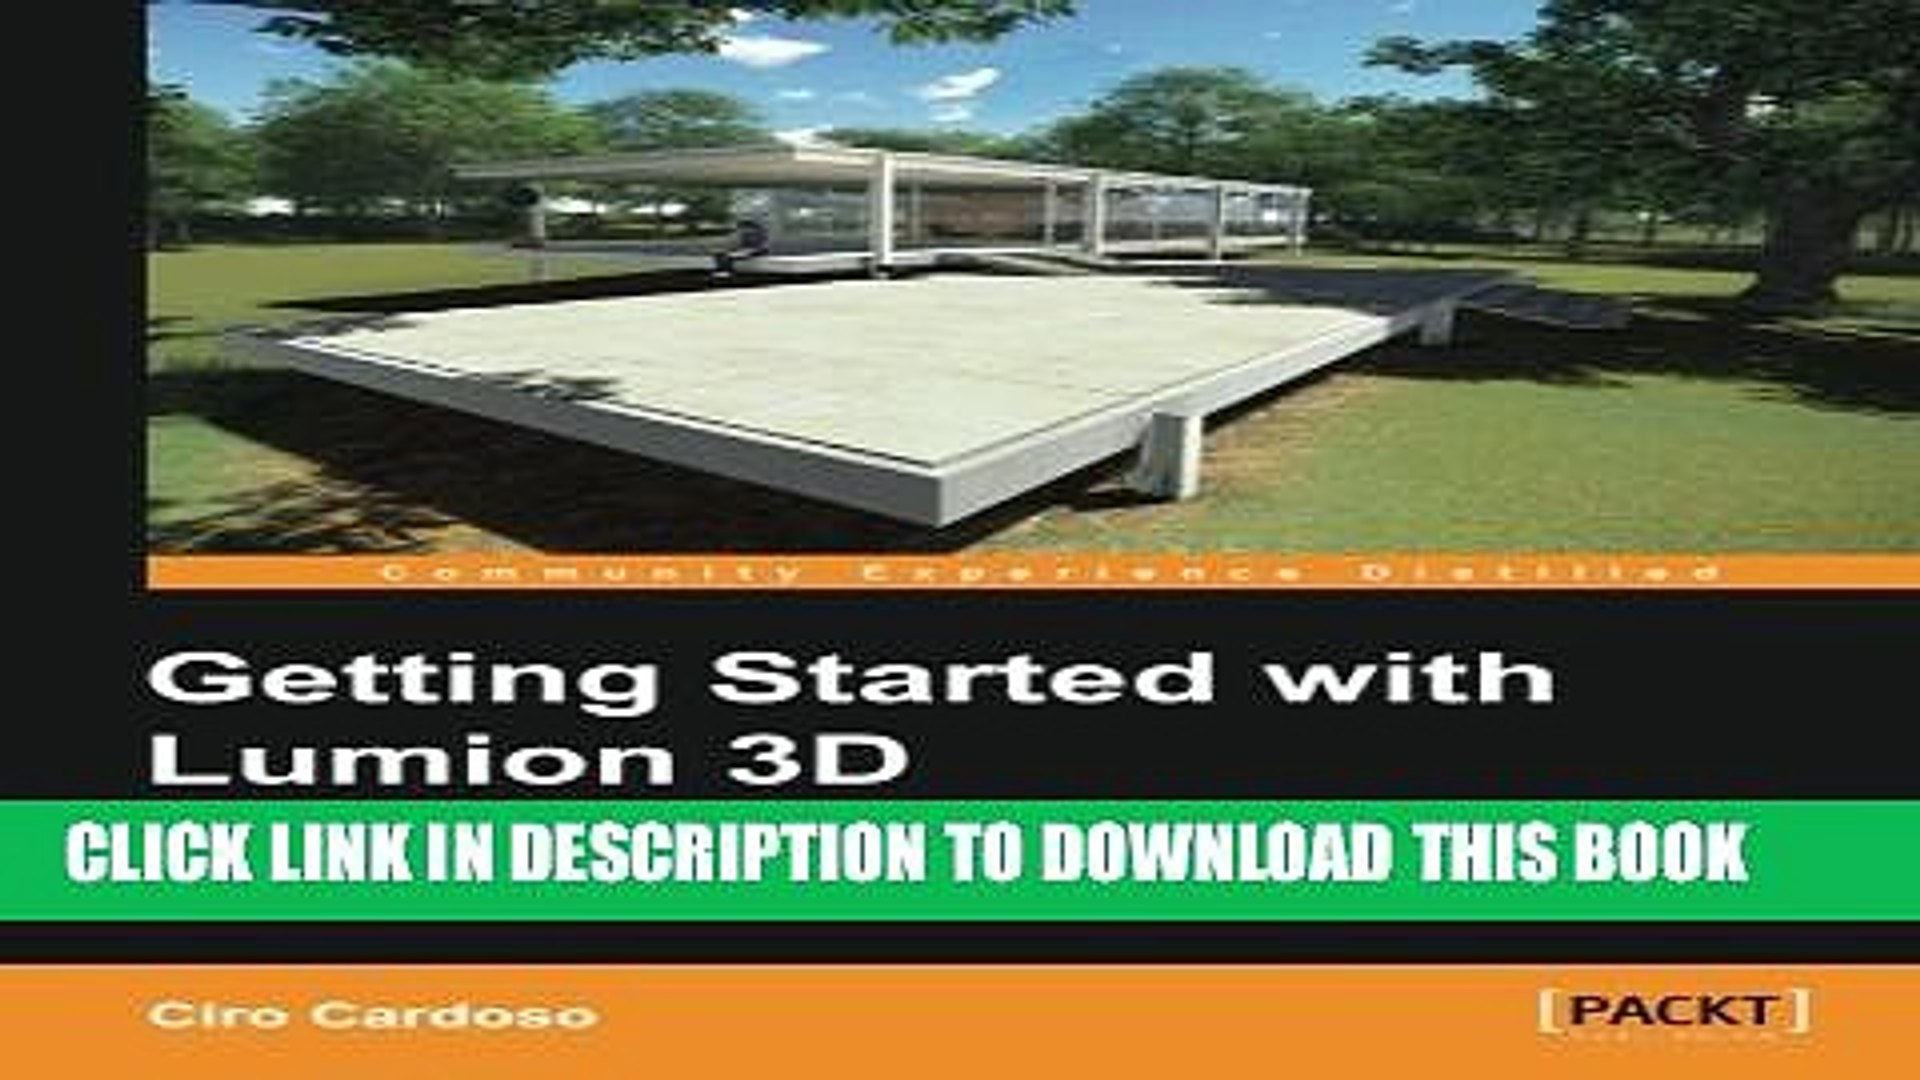 [Read PDF] Getting Started with Lumion 3D Ebook Online